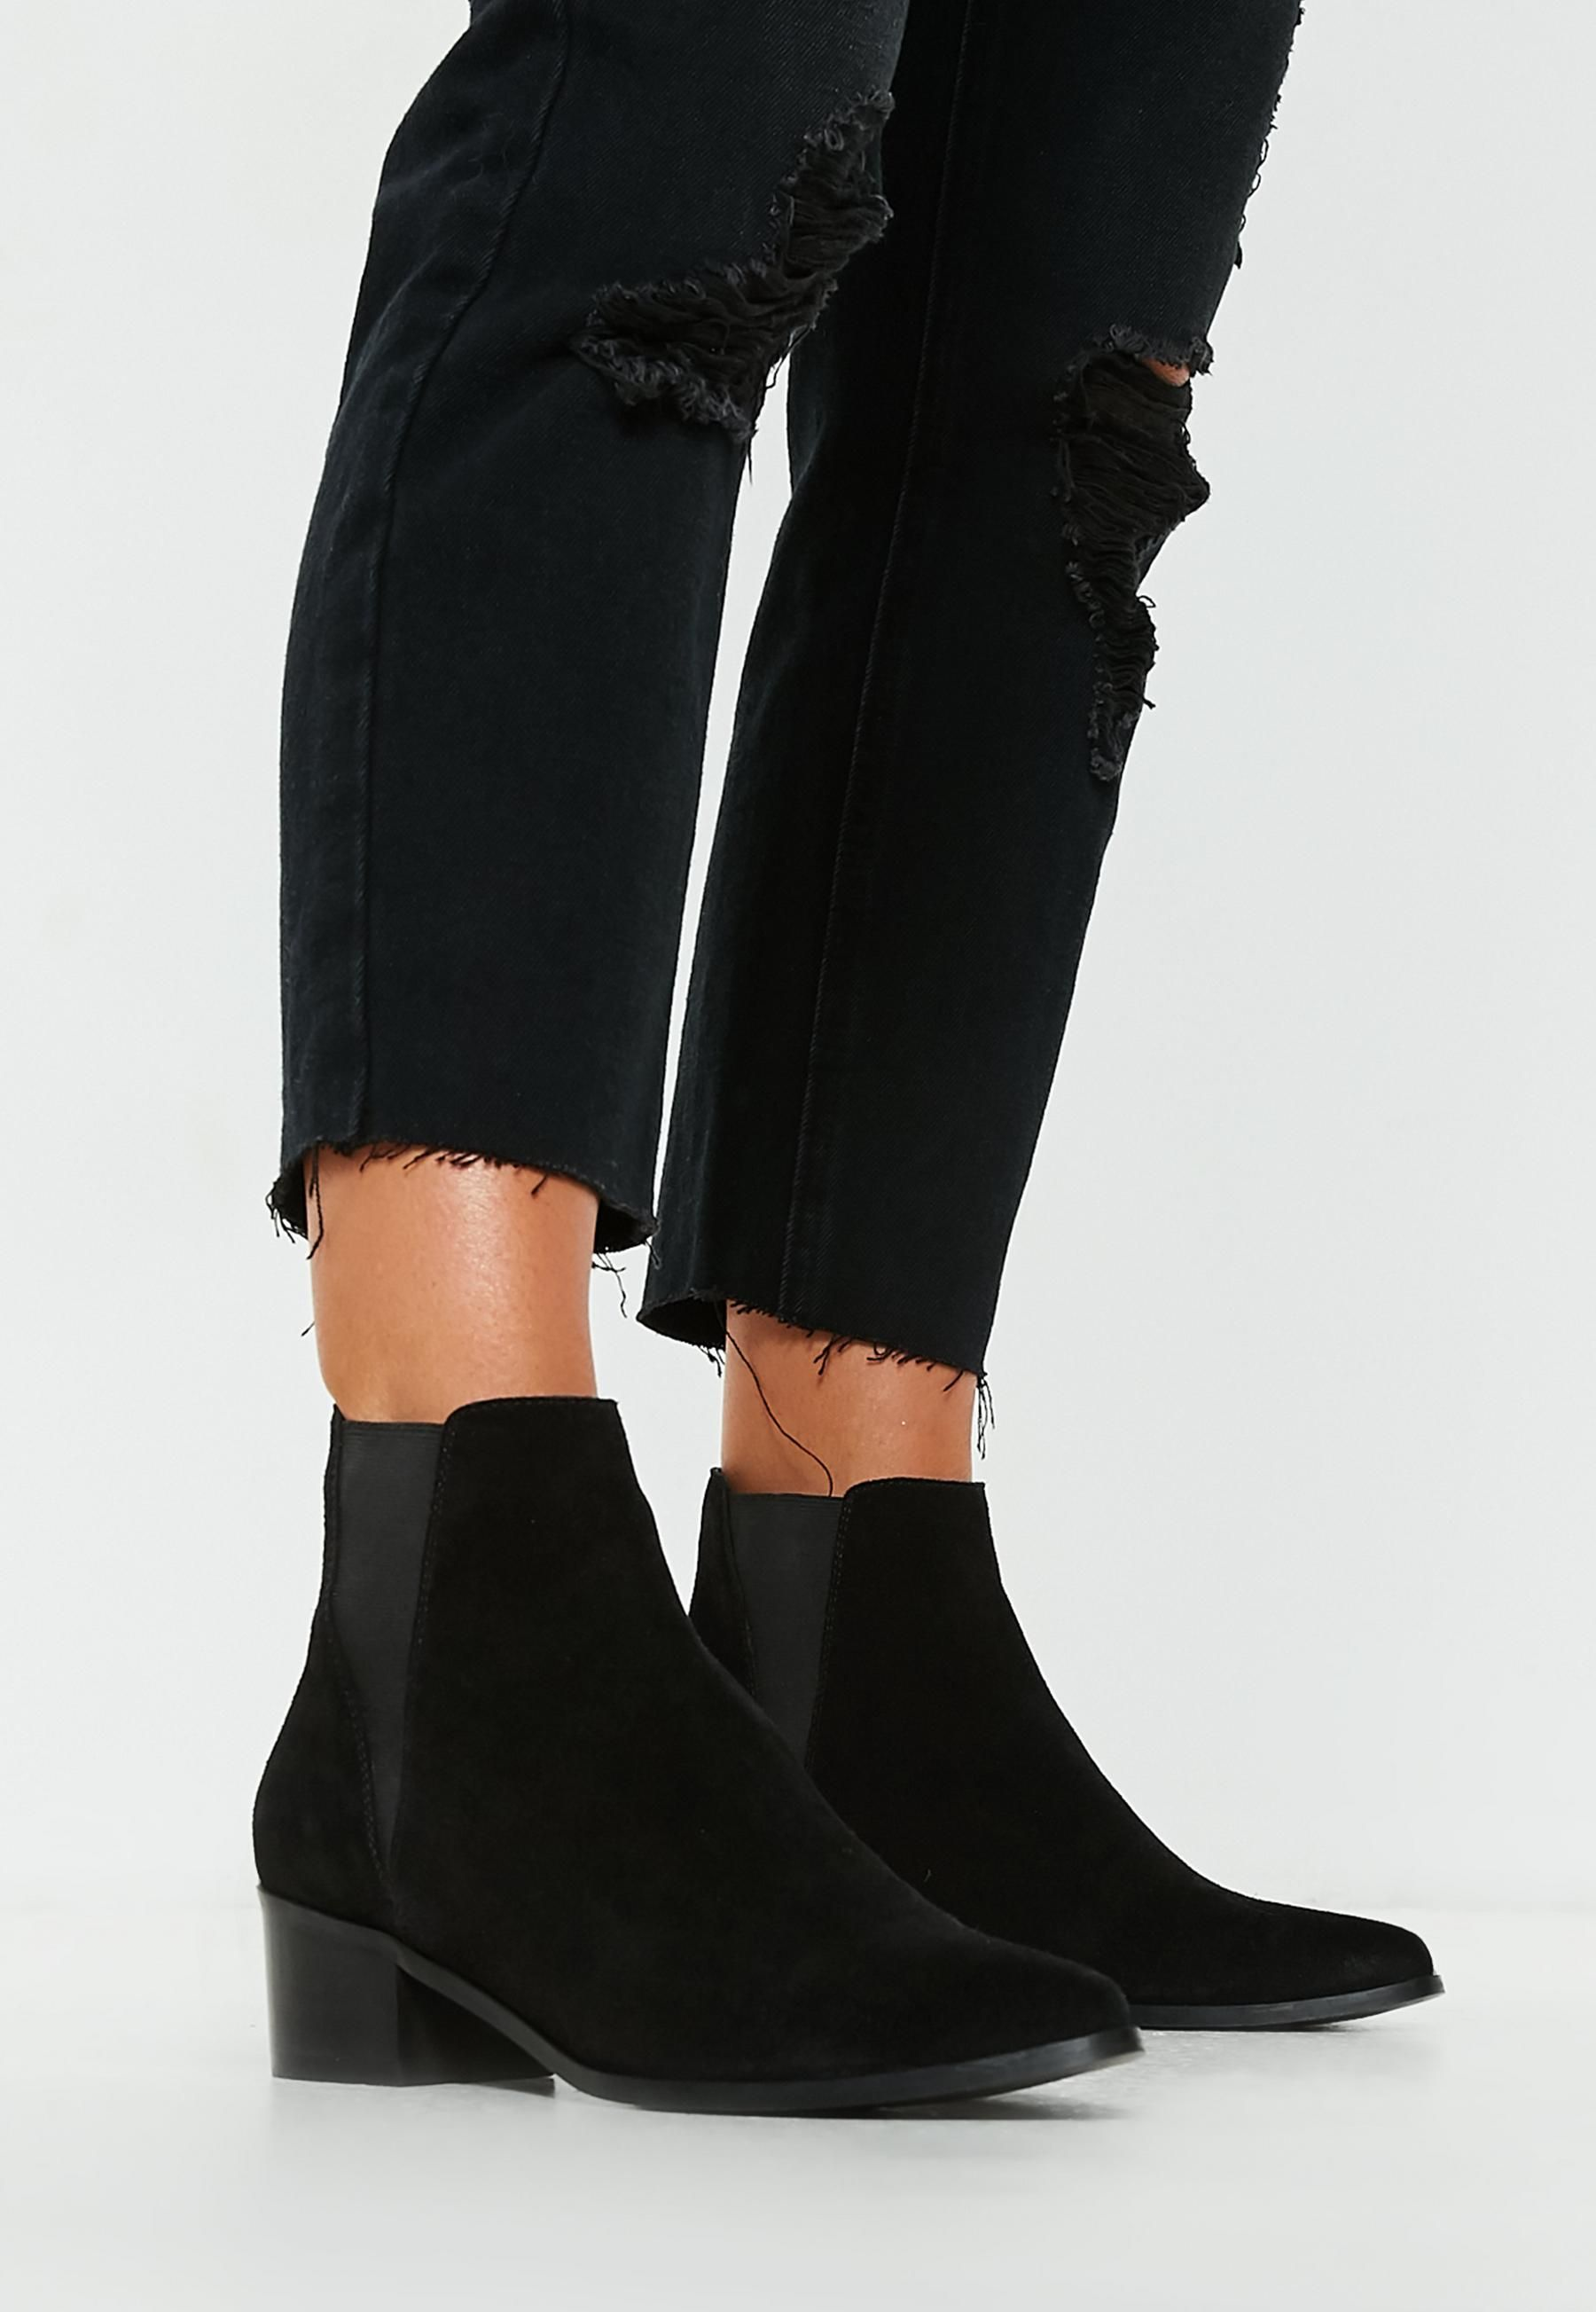 Suede Chelsea Ankle Boots   Missguided